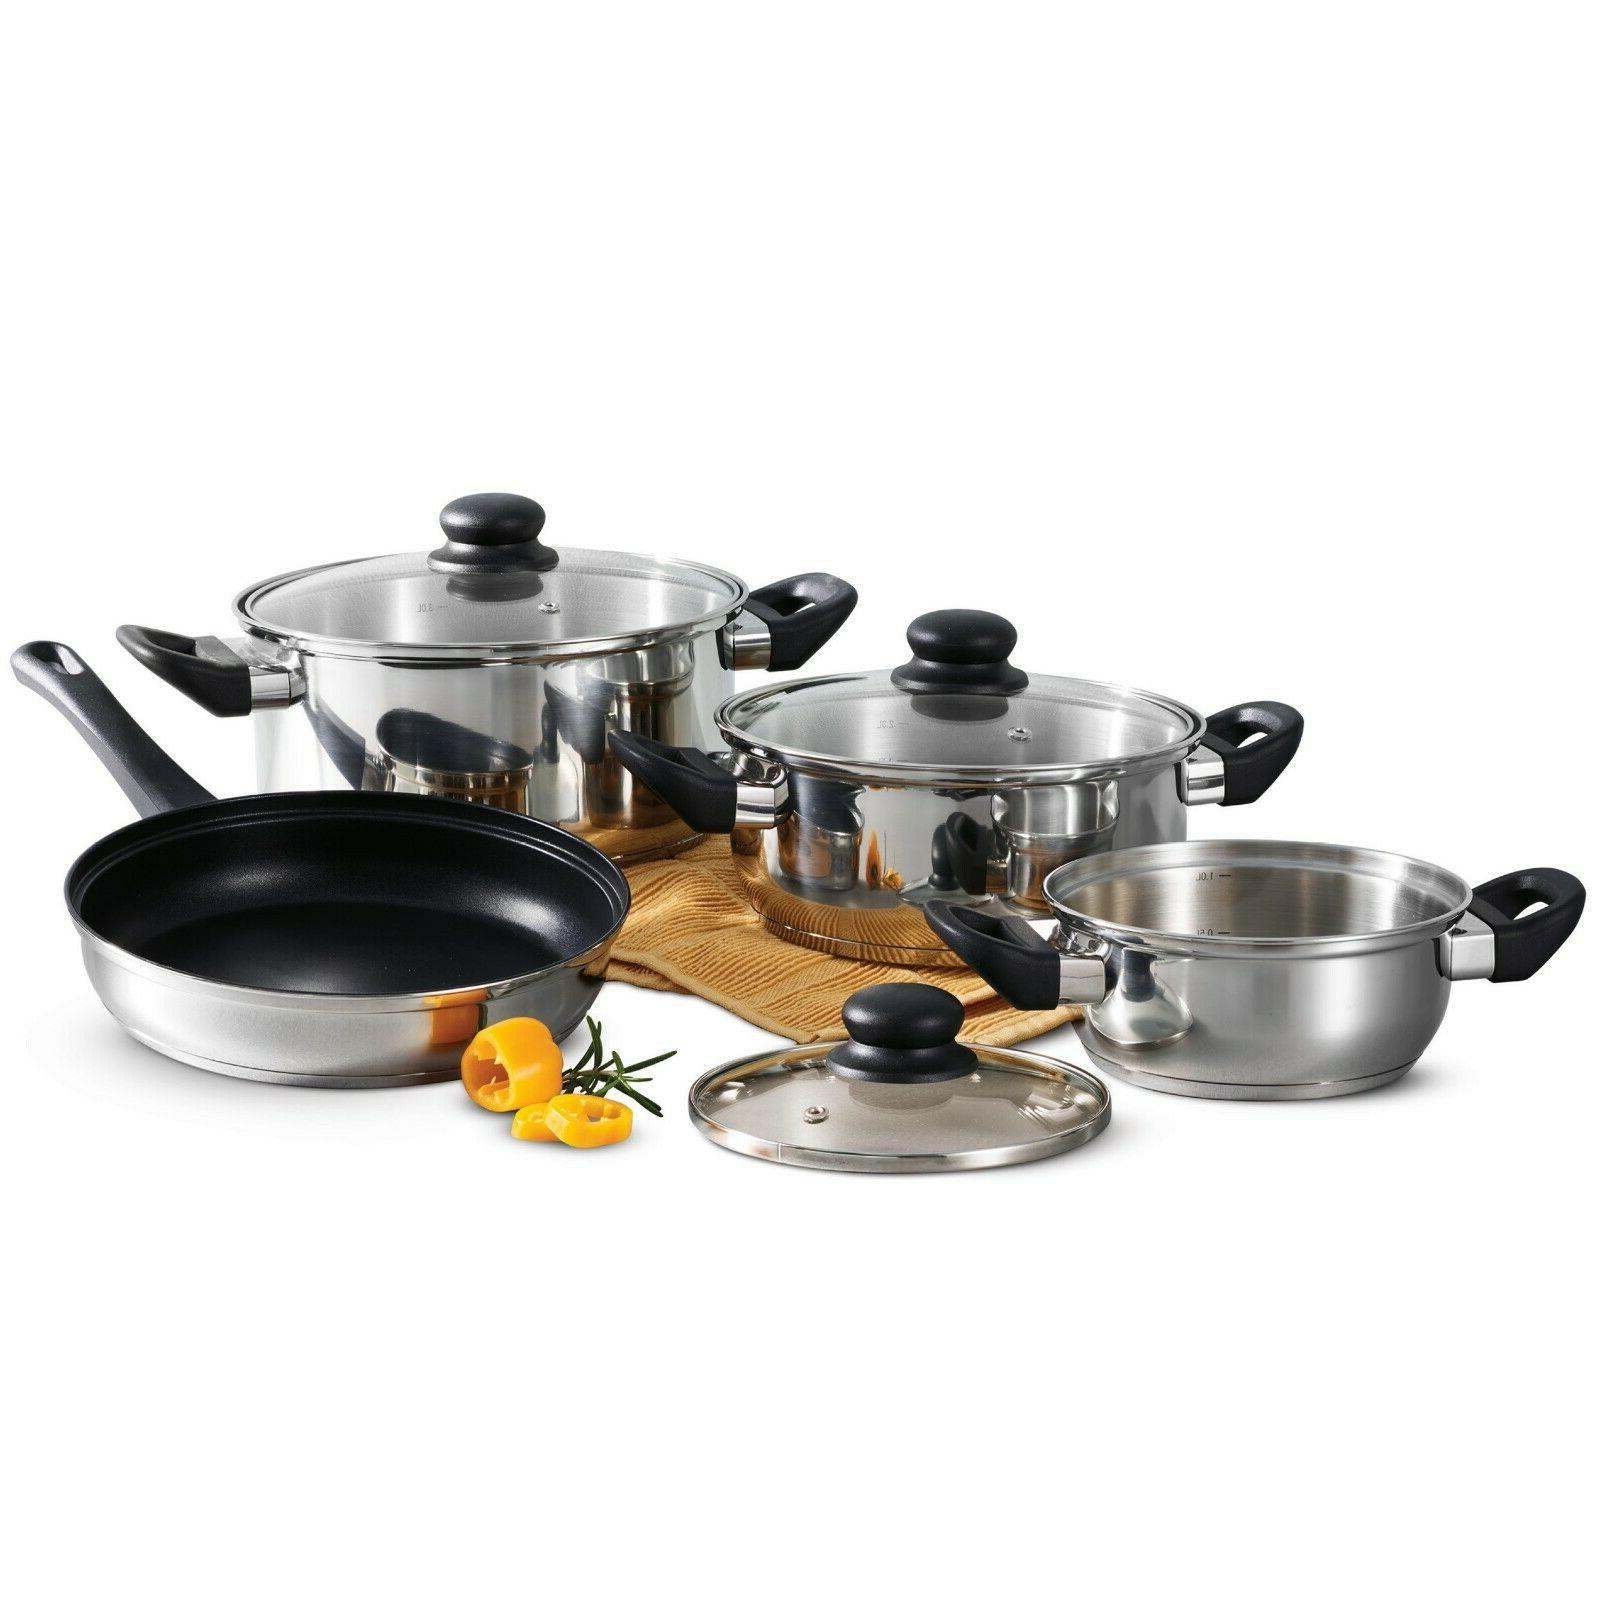 primaware 80117 585ds stainless steel